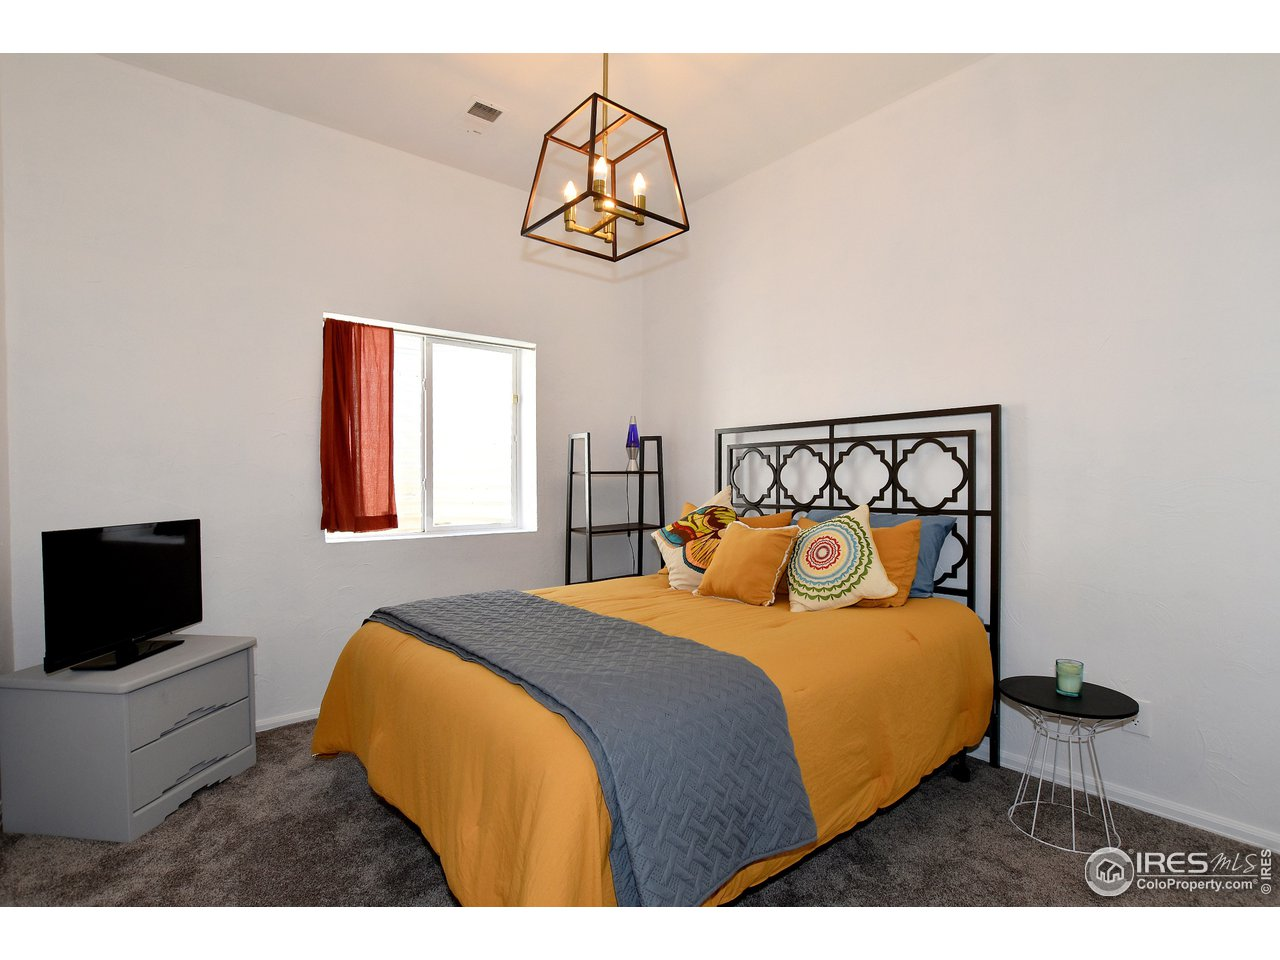 Basement Bedroom # 4, Light and Bright with Walk-in Closet